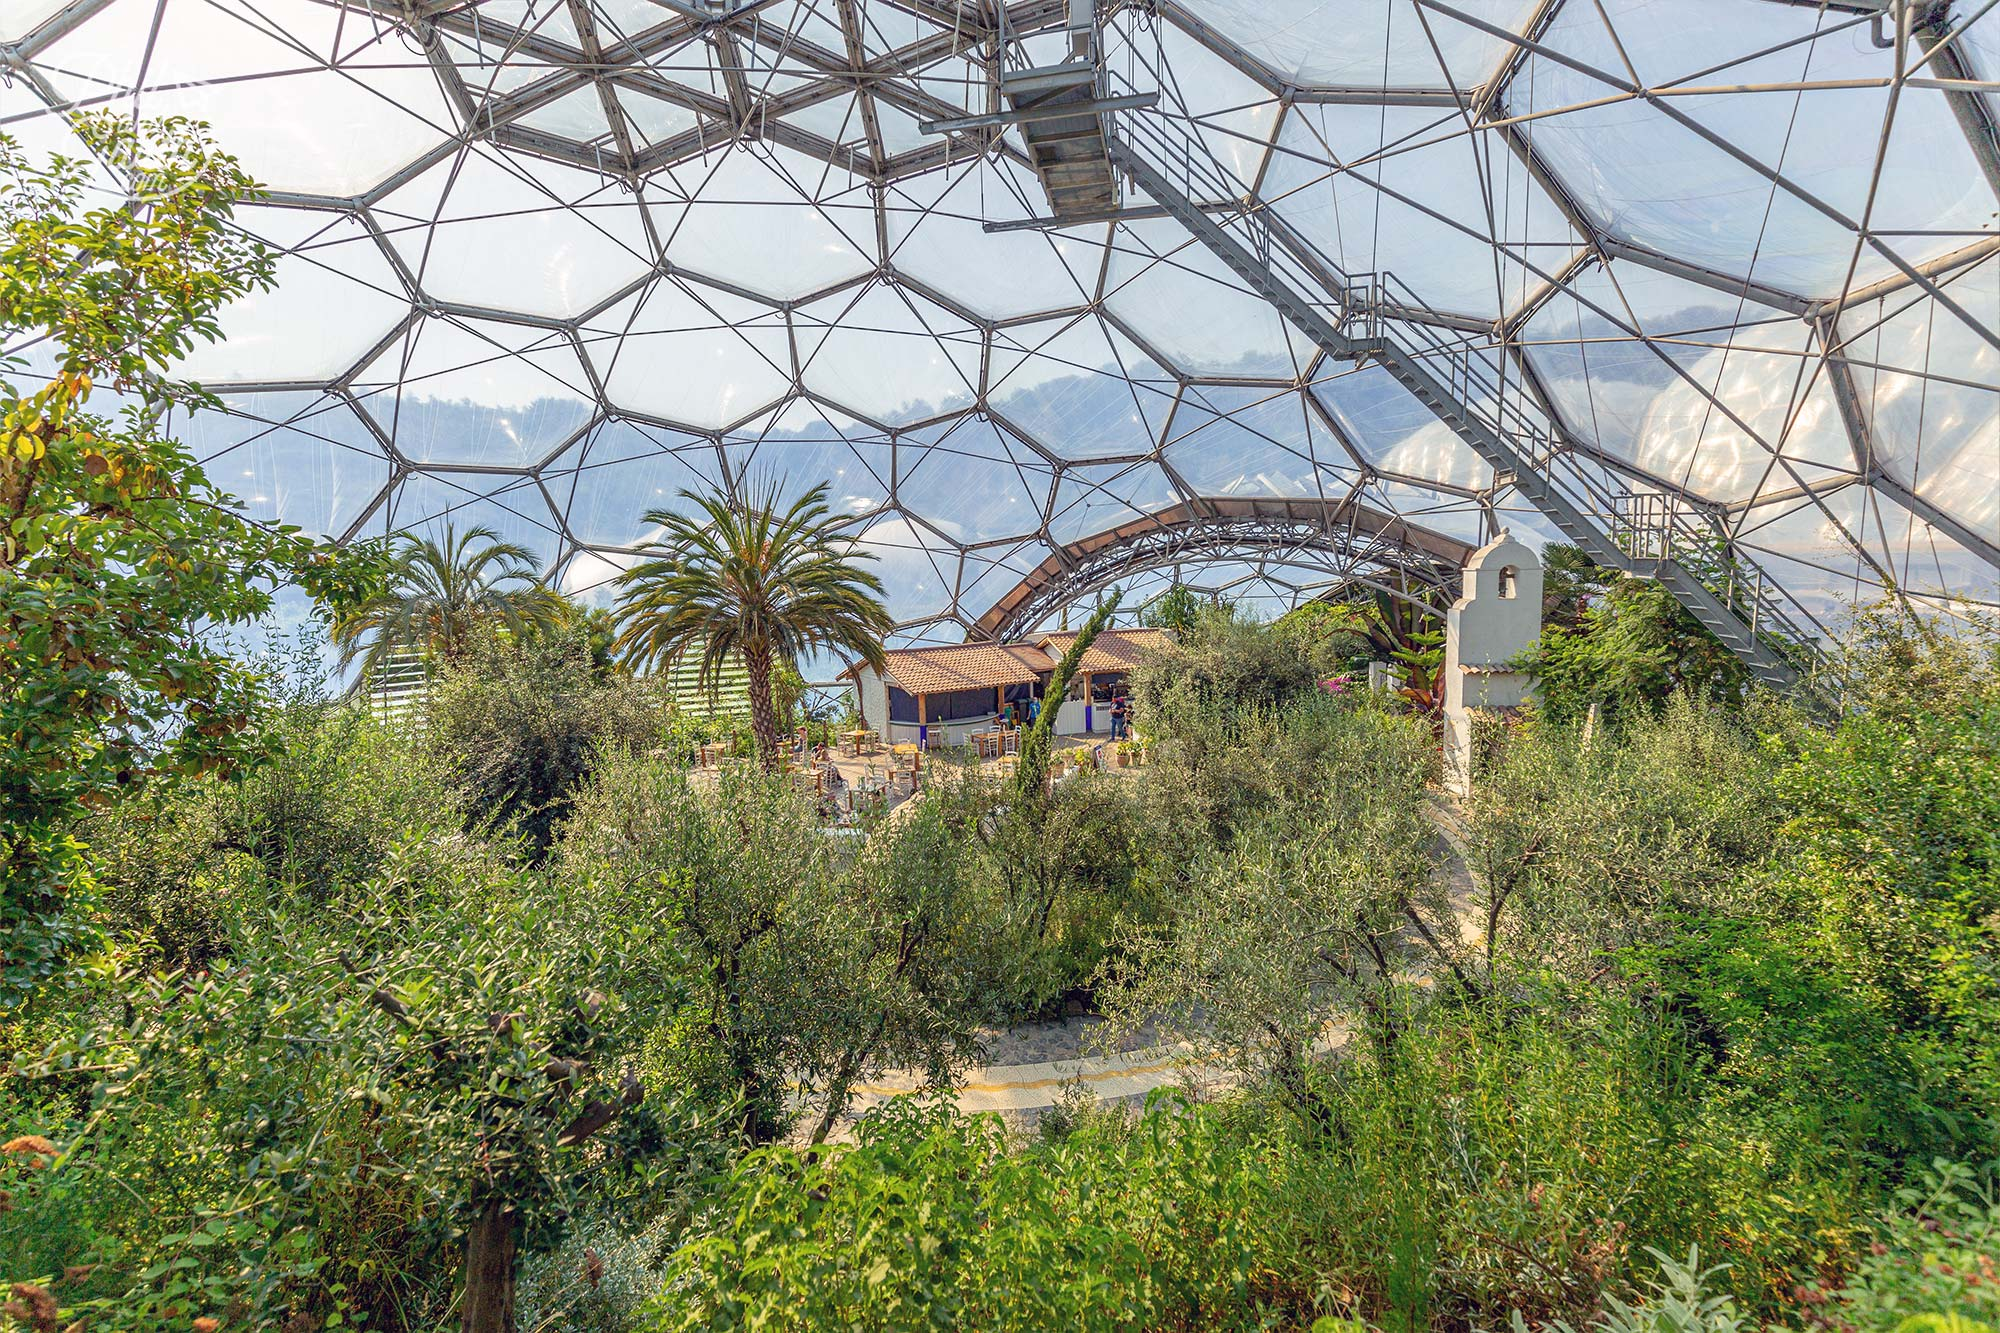 Inside the Mediterranean Biome. The exoskeleton biomes are made of thermoplastic and steel